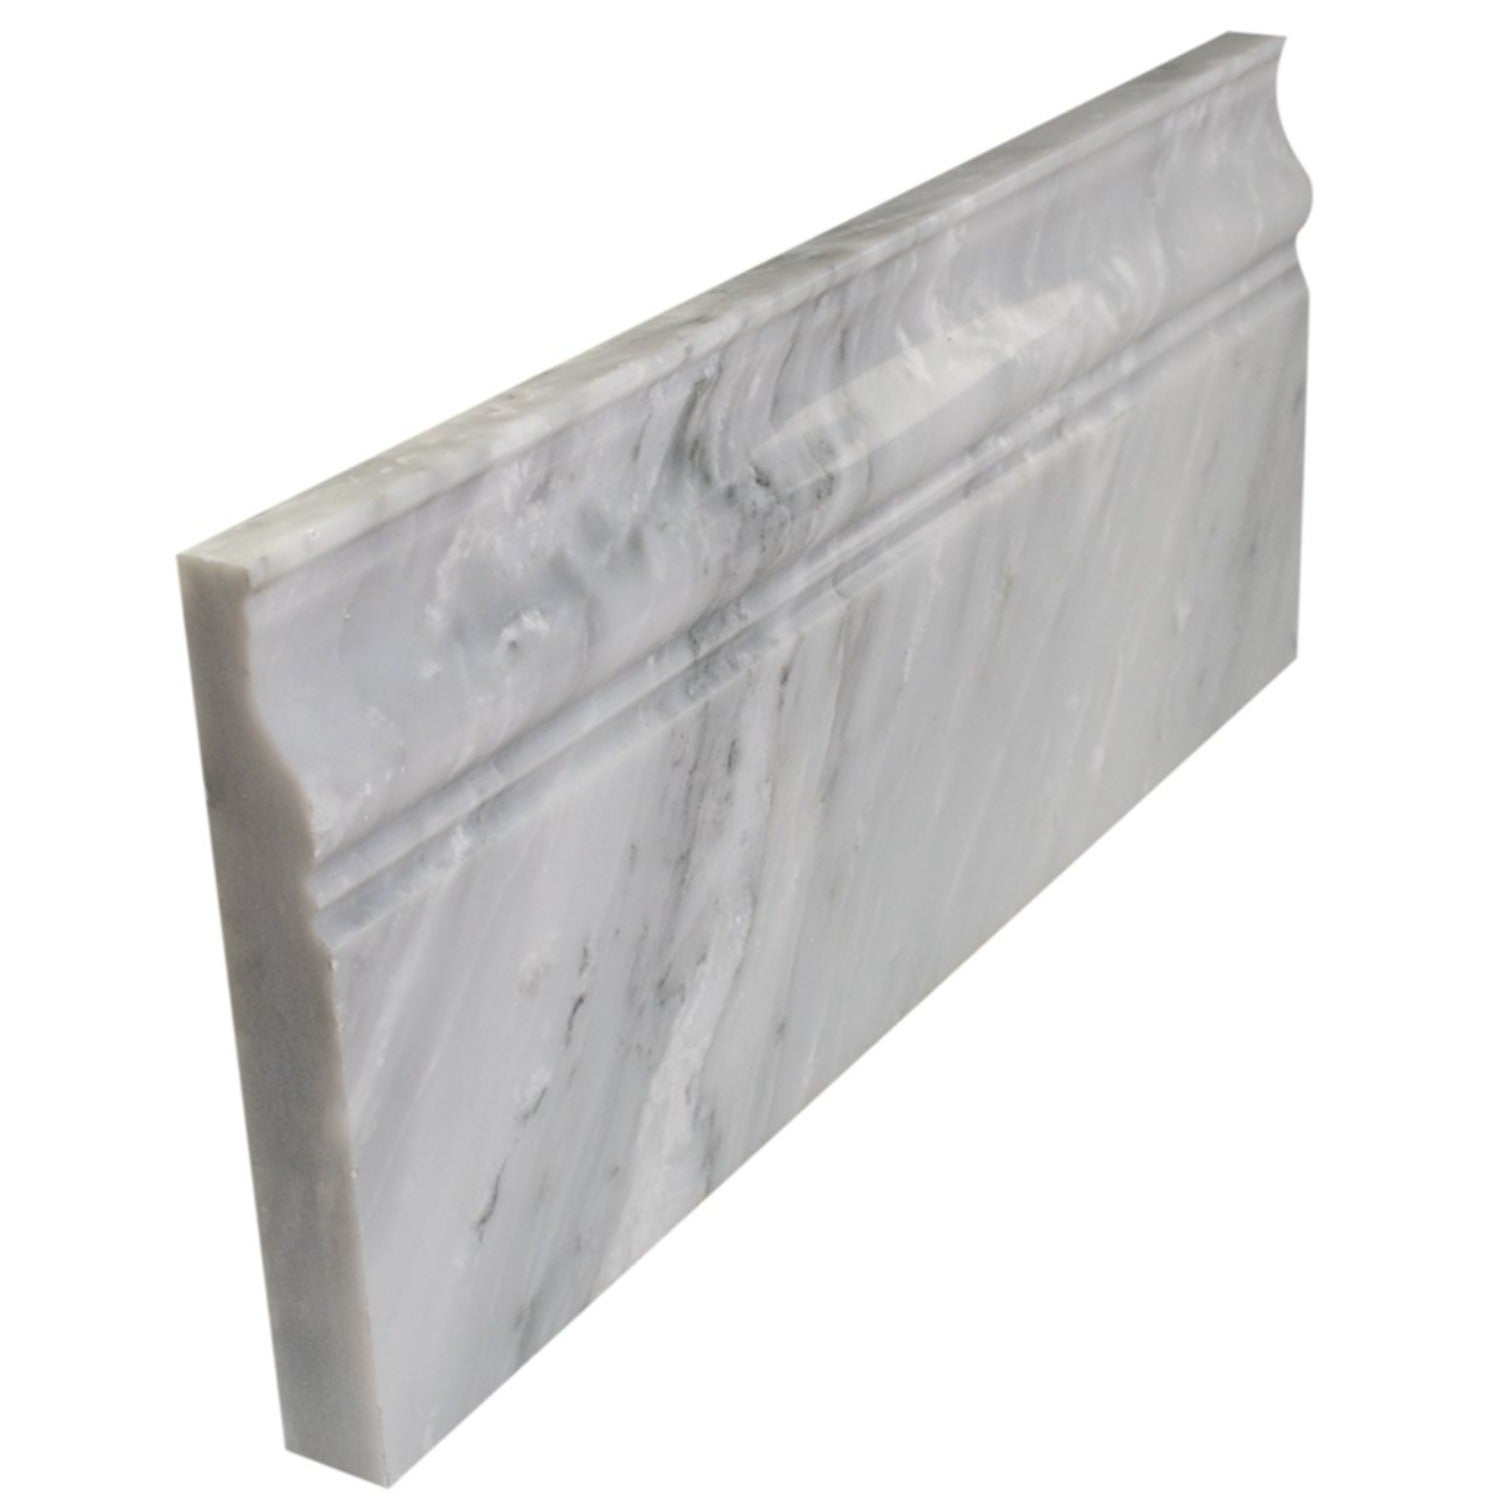 Arabescato Carrara Honed / Polished 5x12 Base Moulding Marble